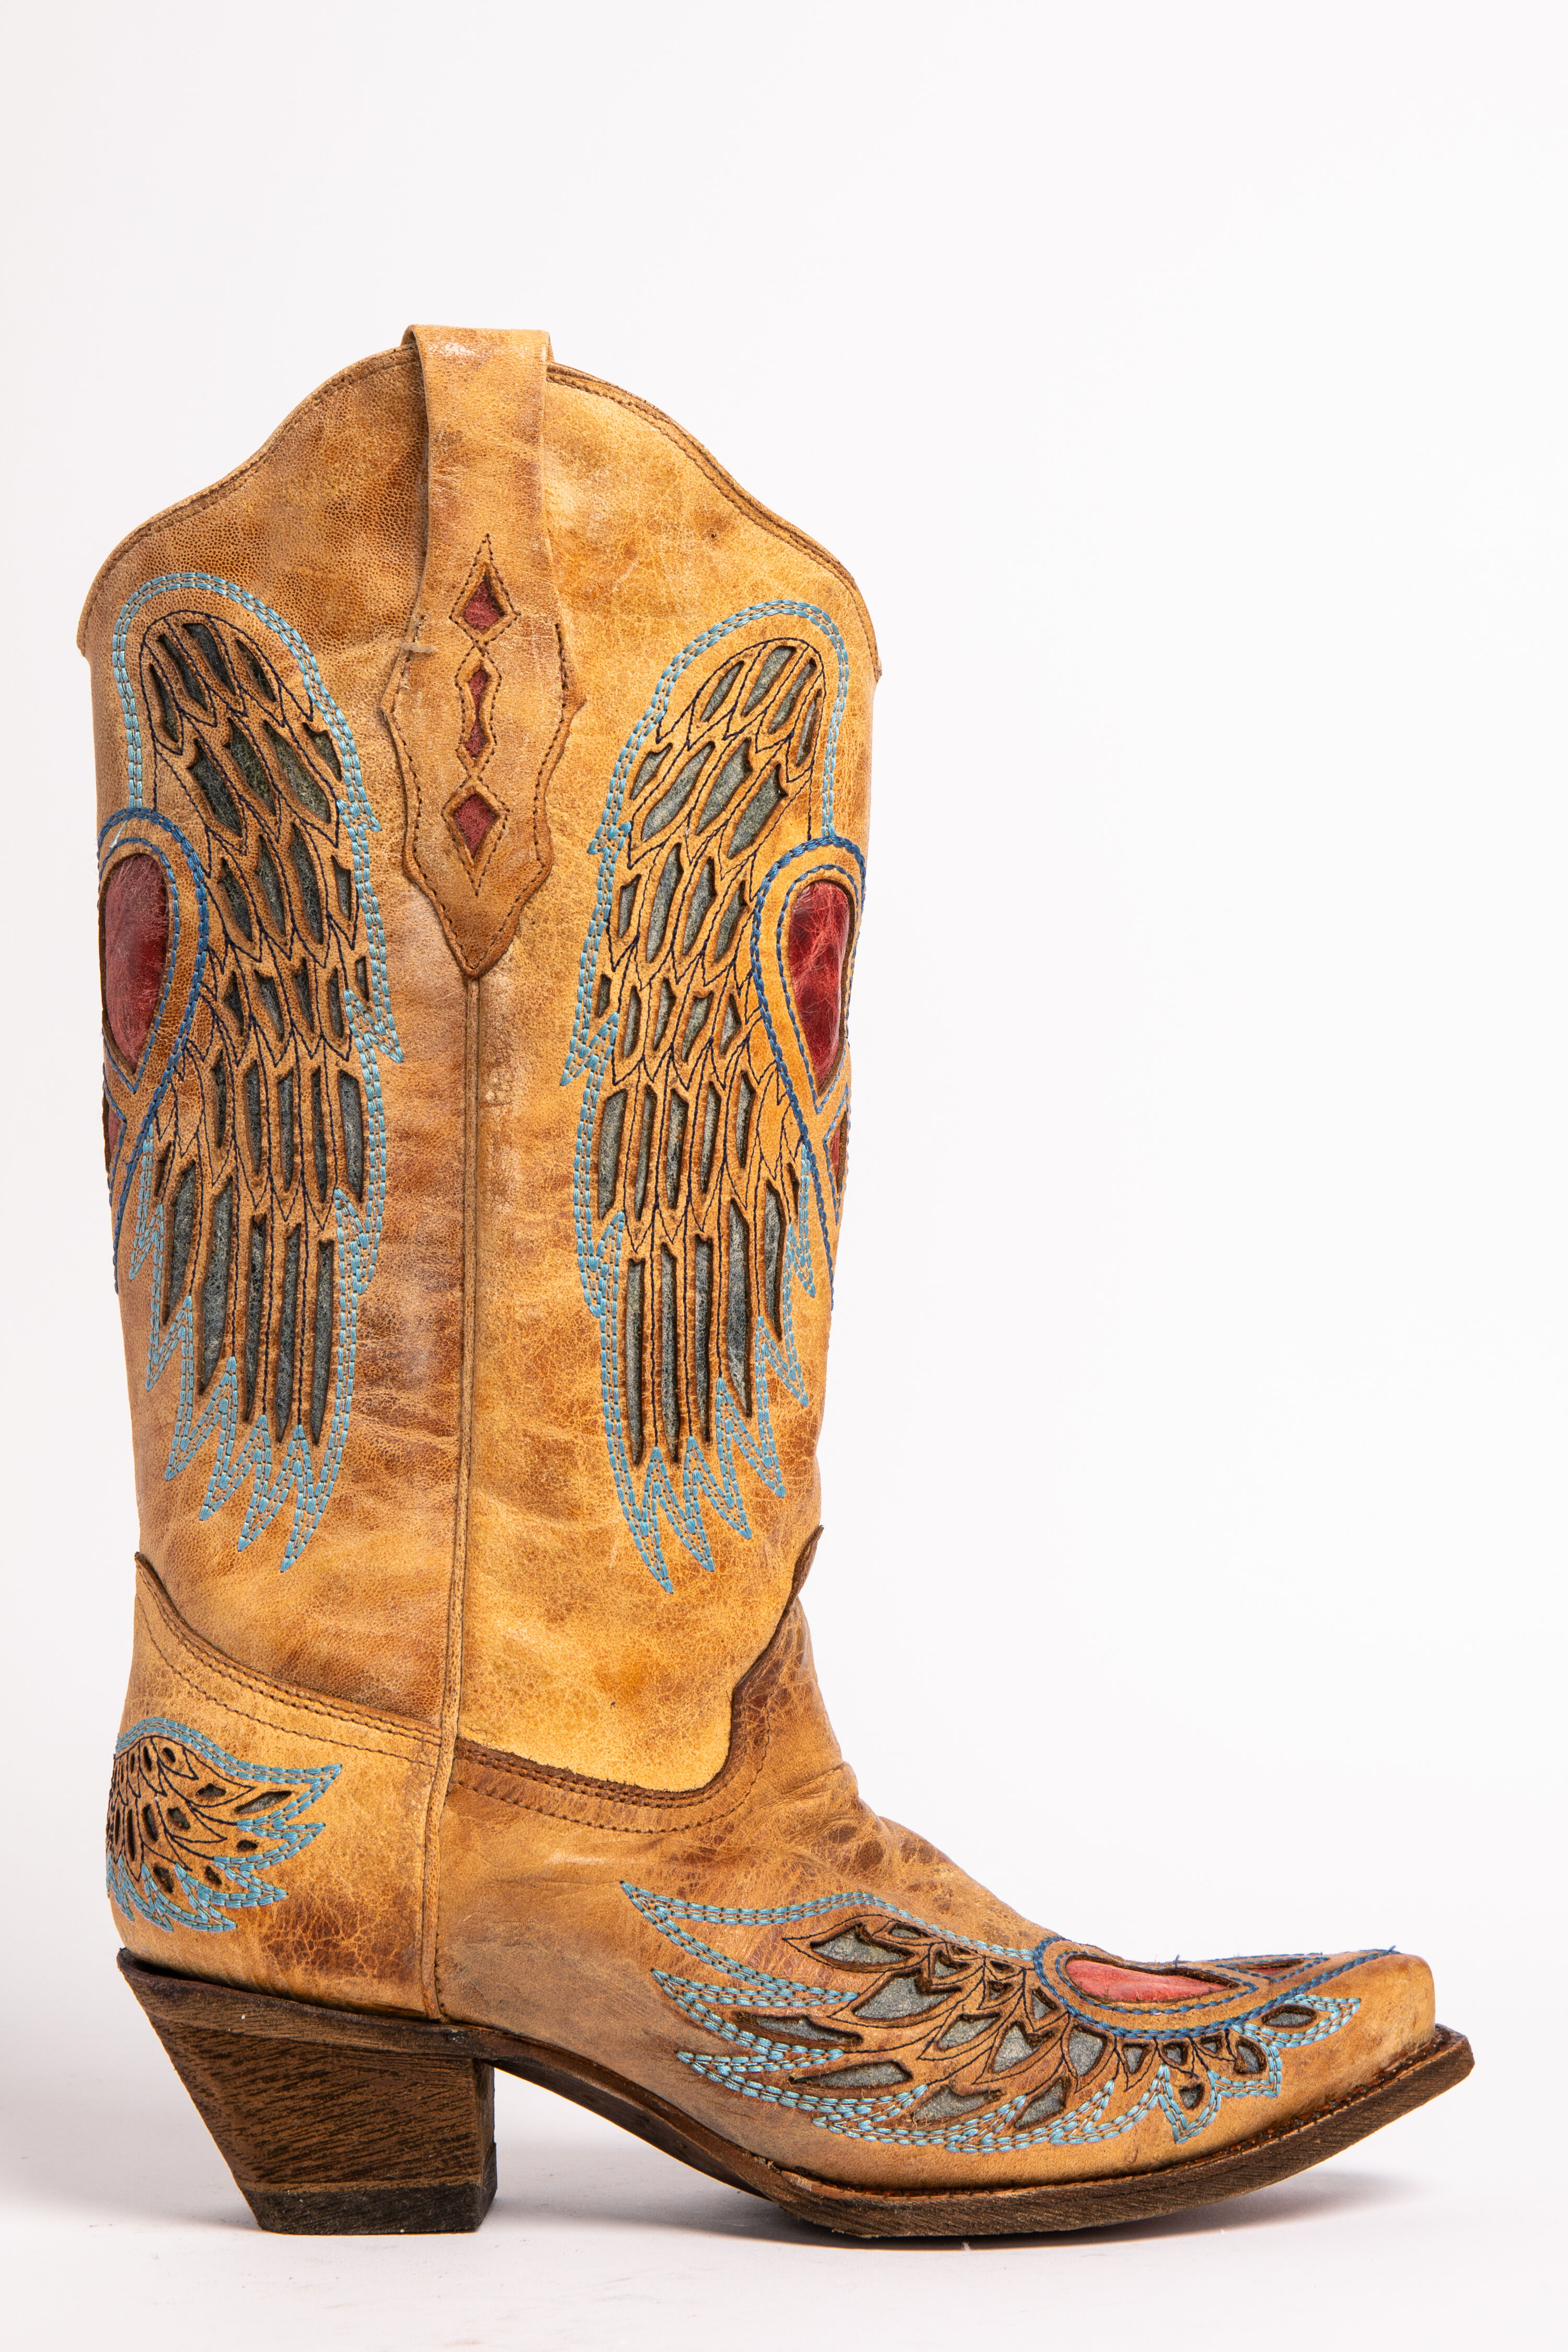 Corral Heart Angel Wing Cowboy Boots Snip Toe